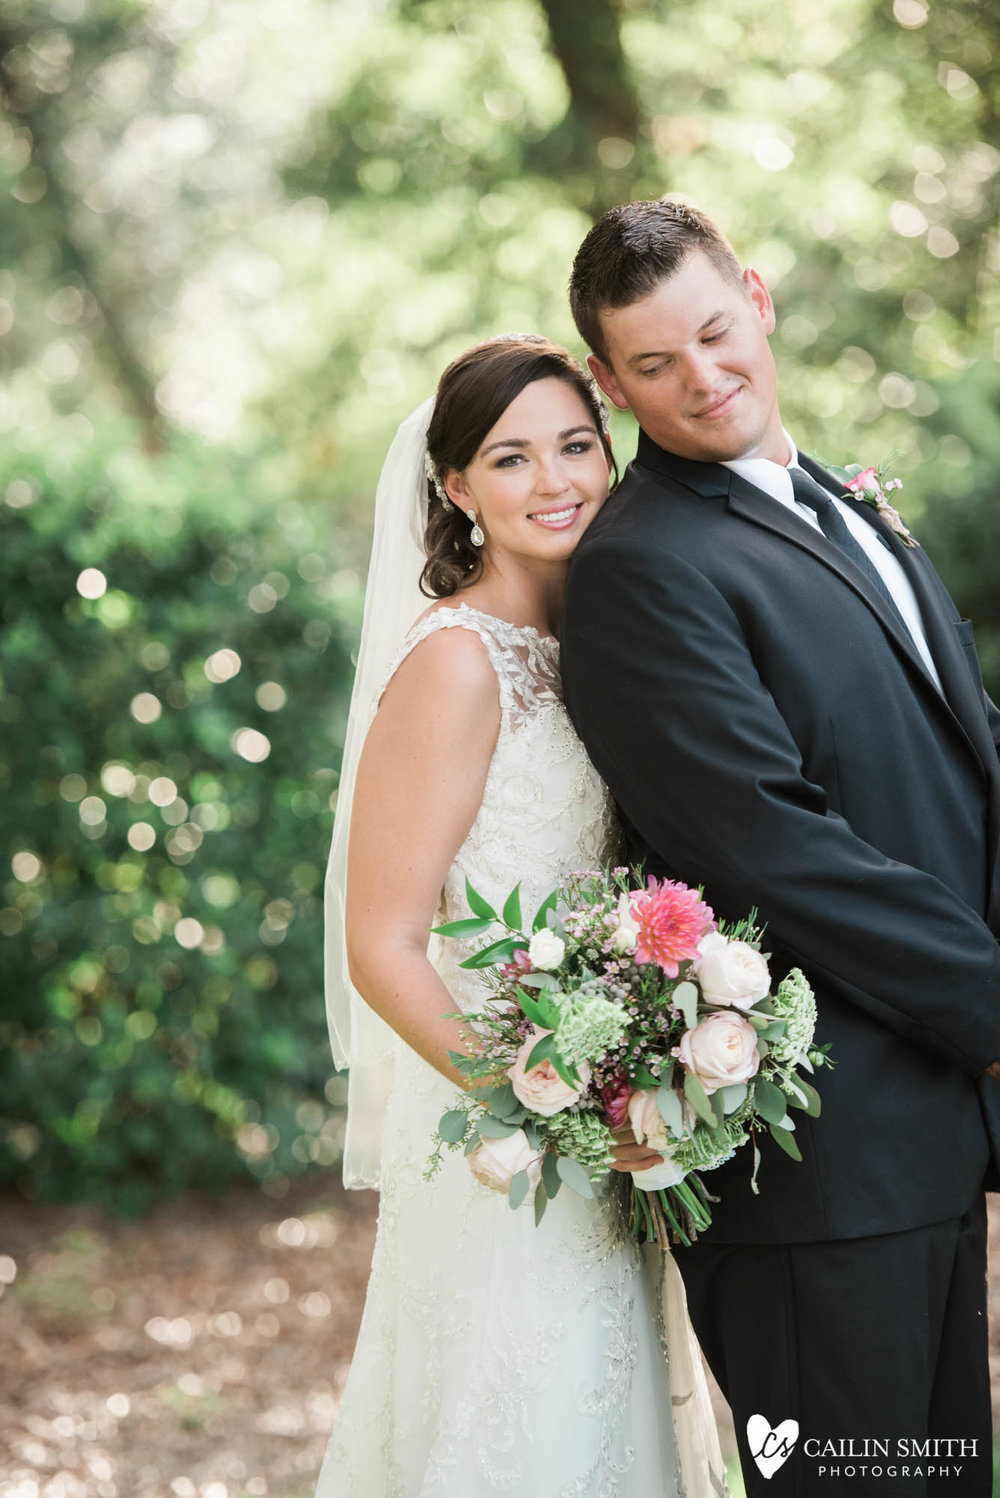 Bethany_Kyle_Bowing_Oaks_Plantation_Wedding_Photography_0082.jpg